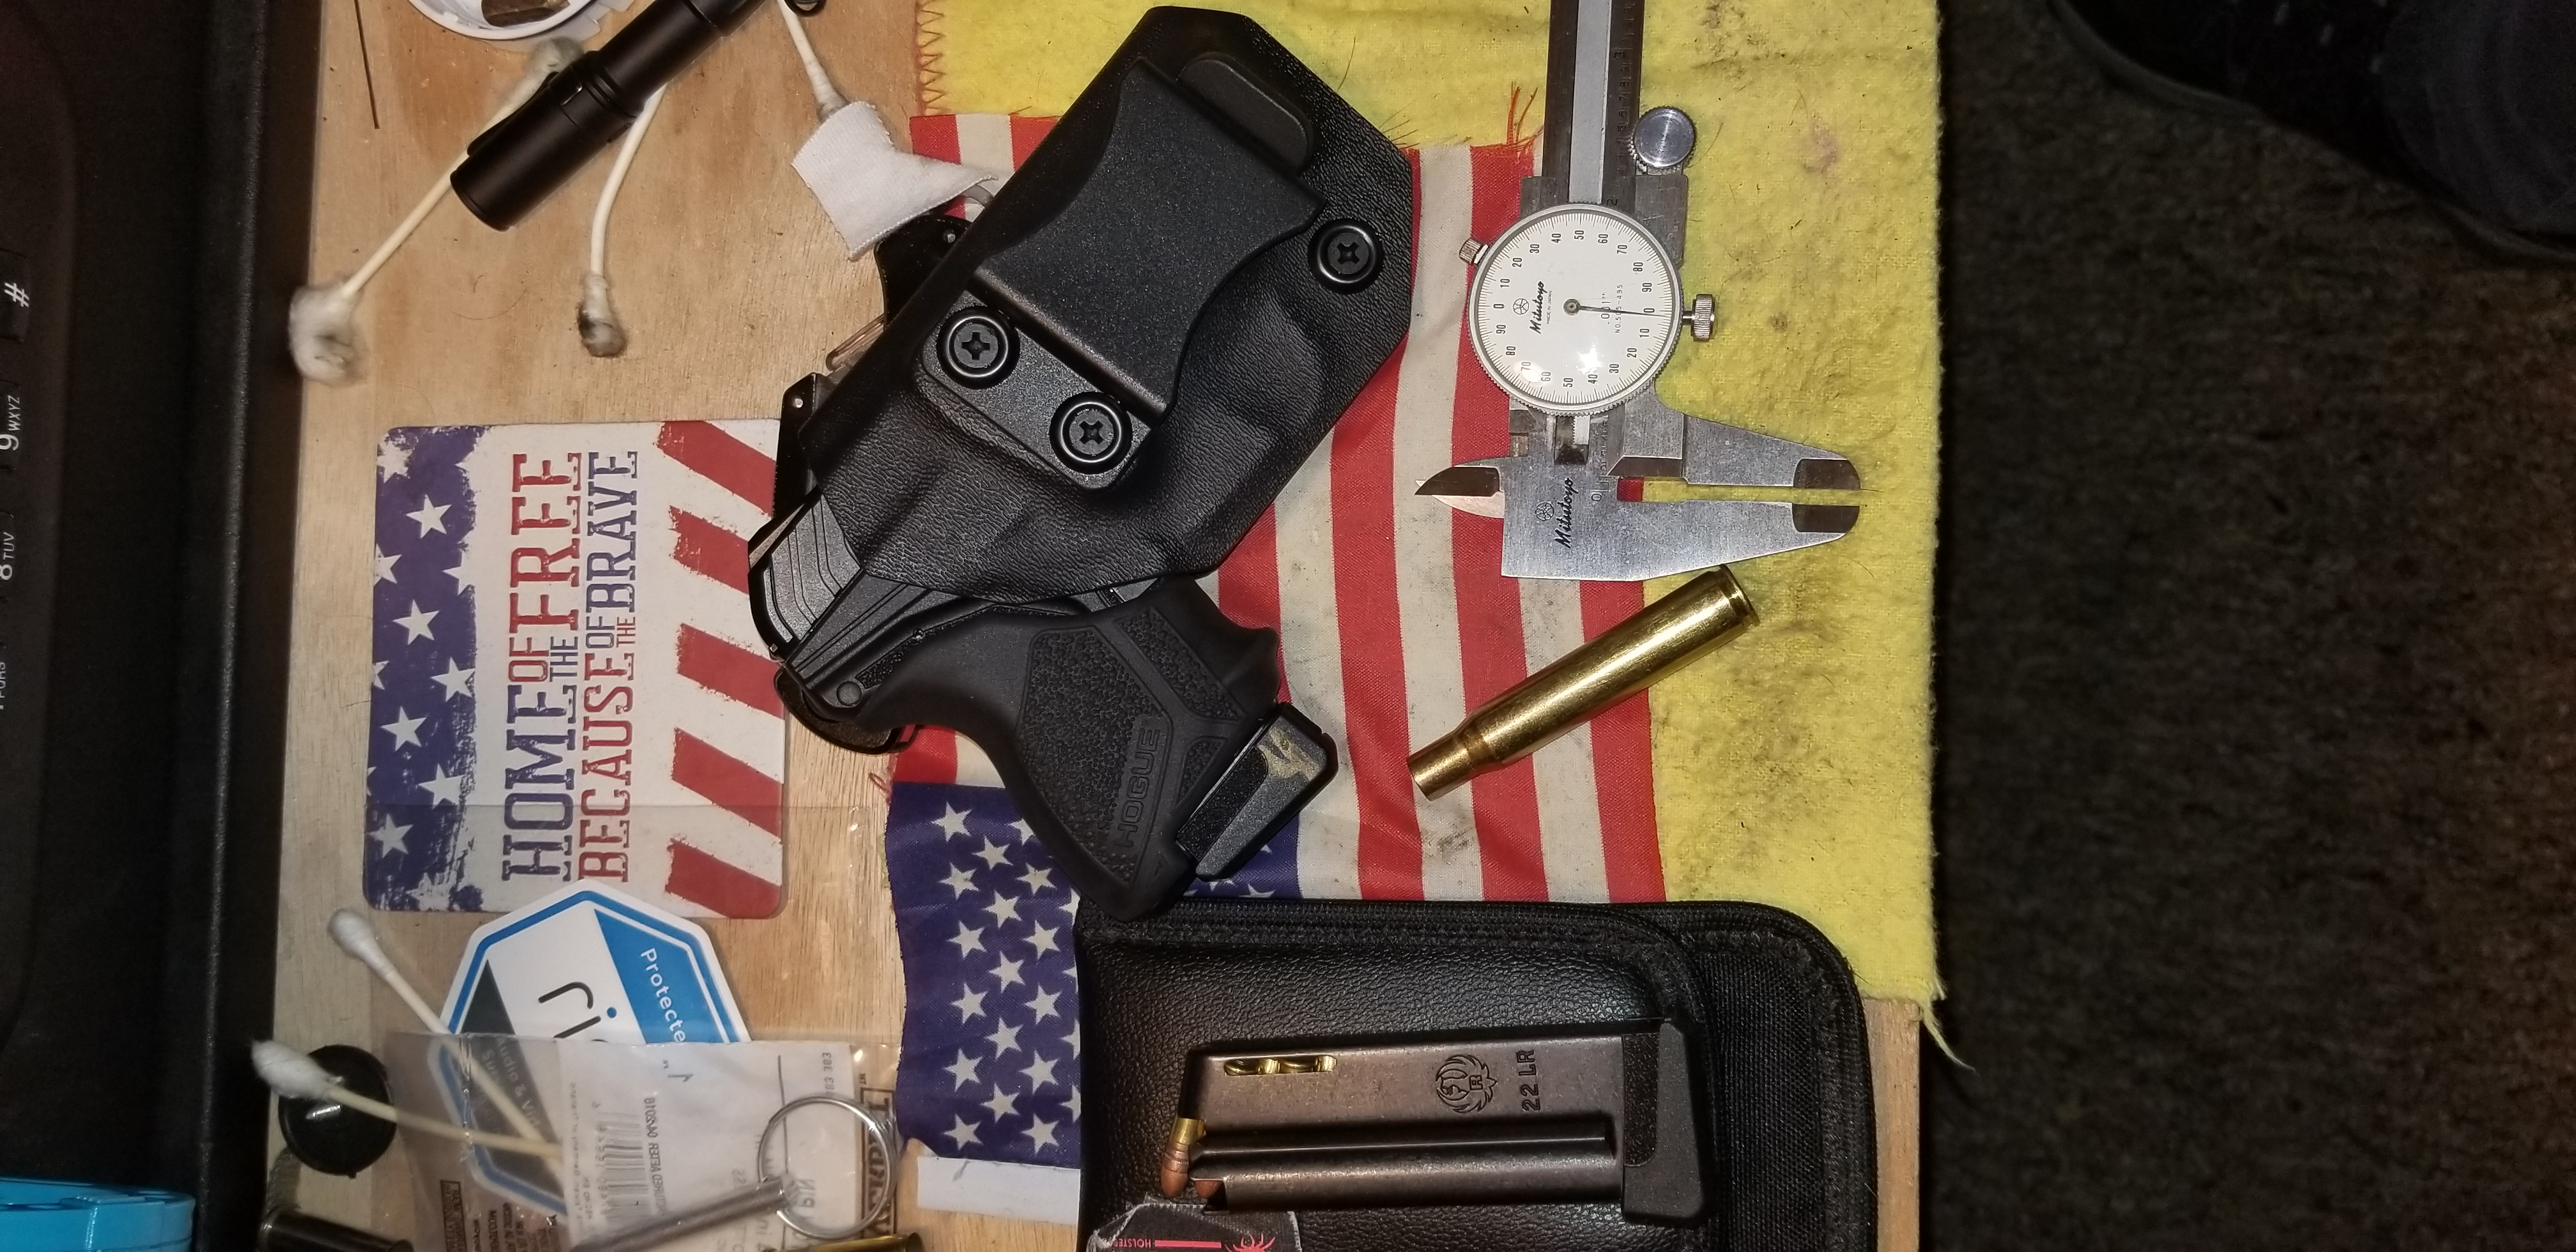 LCPII22LR with Paton Kydex Holster-a_lcpii22lr_kydex.jpg